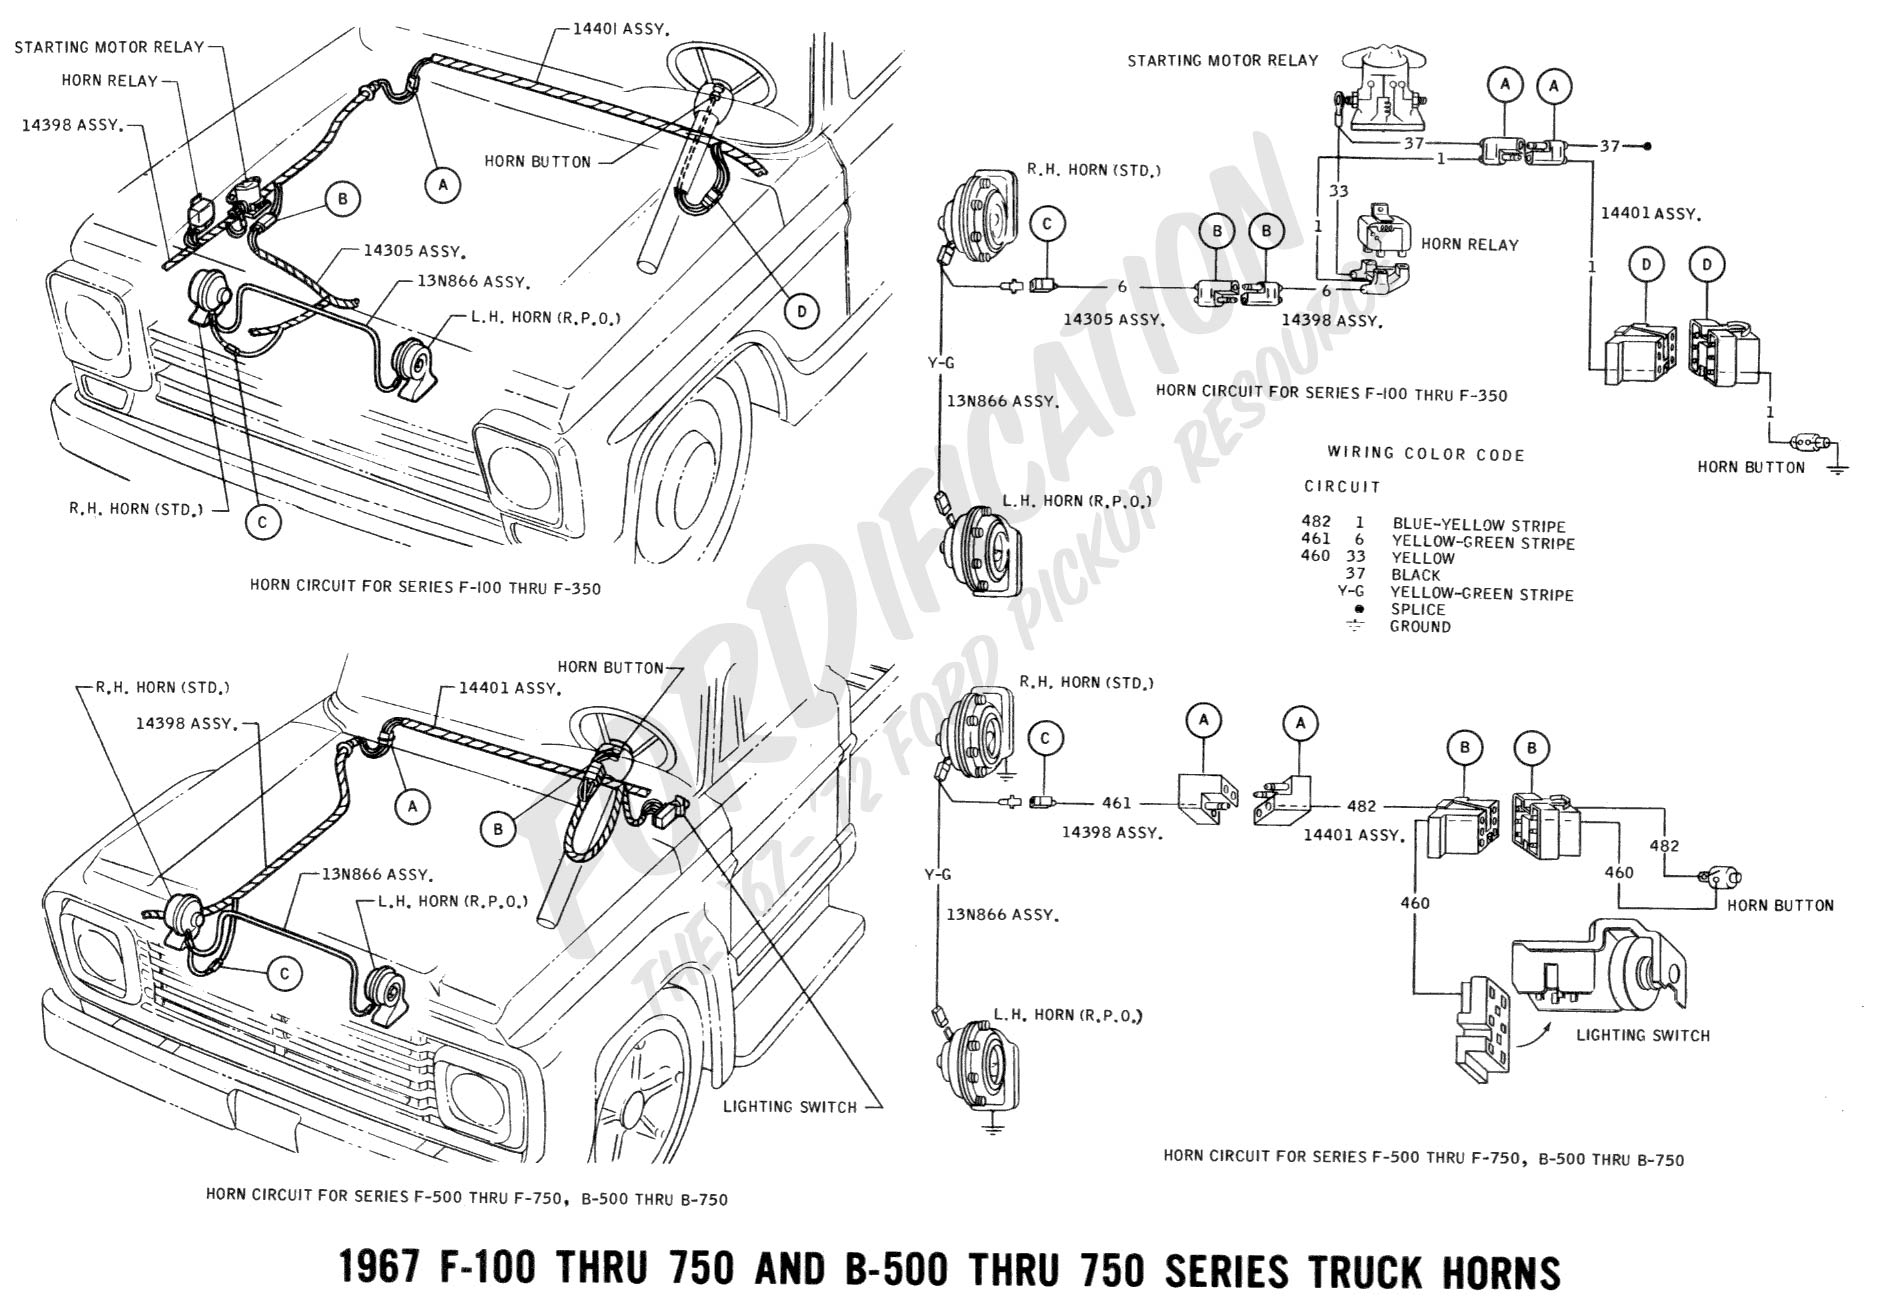 76 Ford Maverick Wiring Diagram Trusted 1976 1967 F100 Fuse Application U2022 1970 Camaro